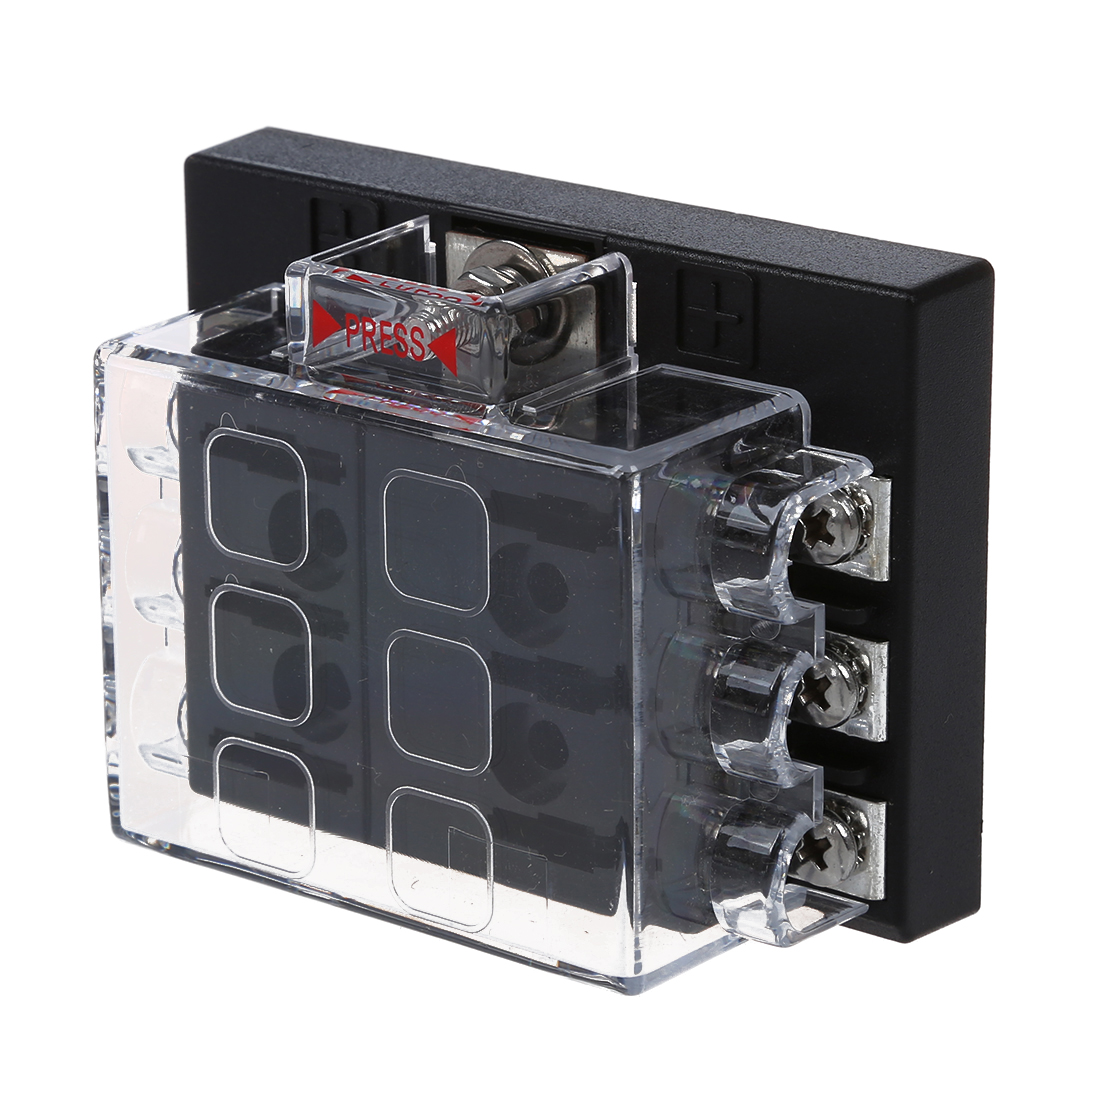 hight resolution of fuse holder box case plug for car autos 6 places